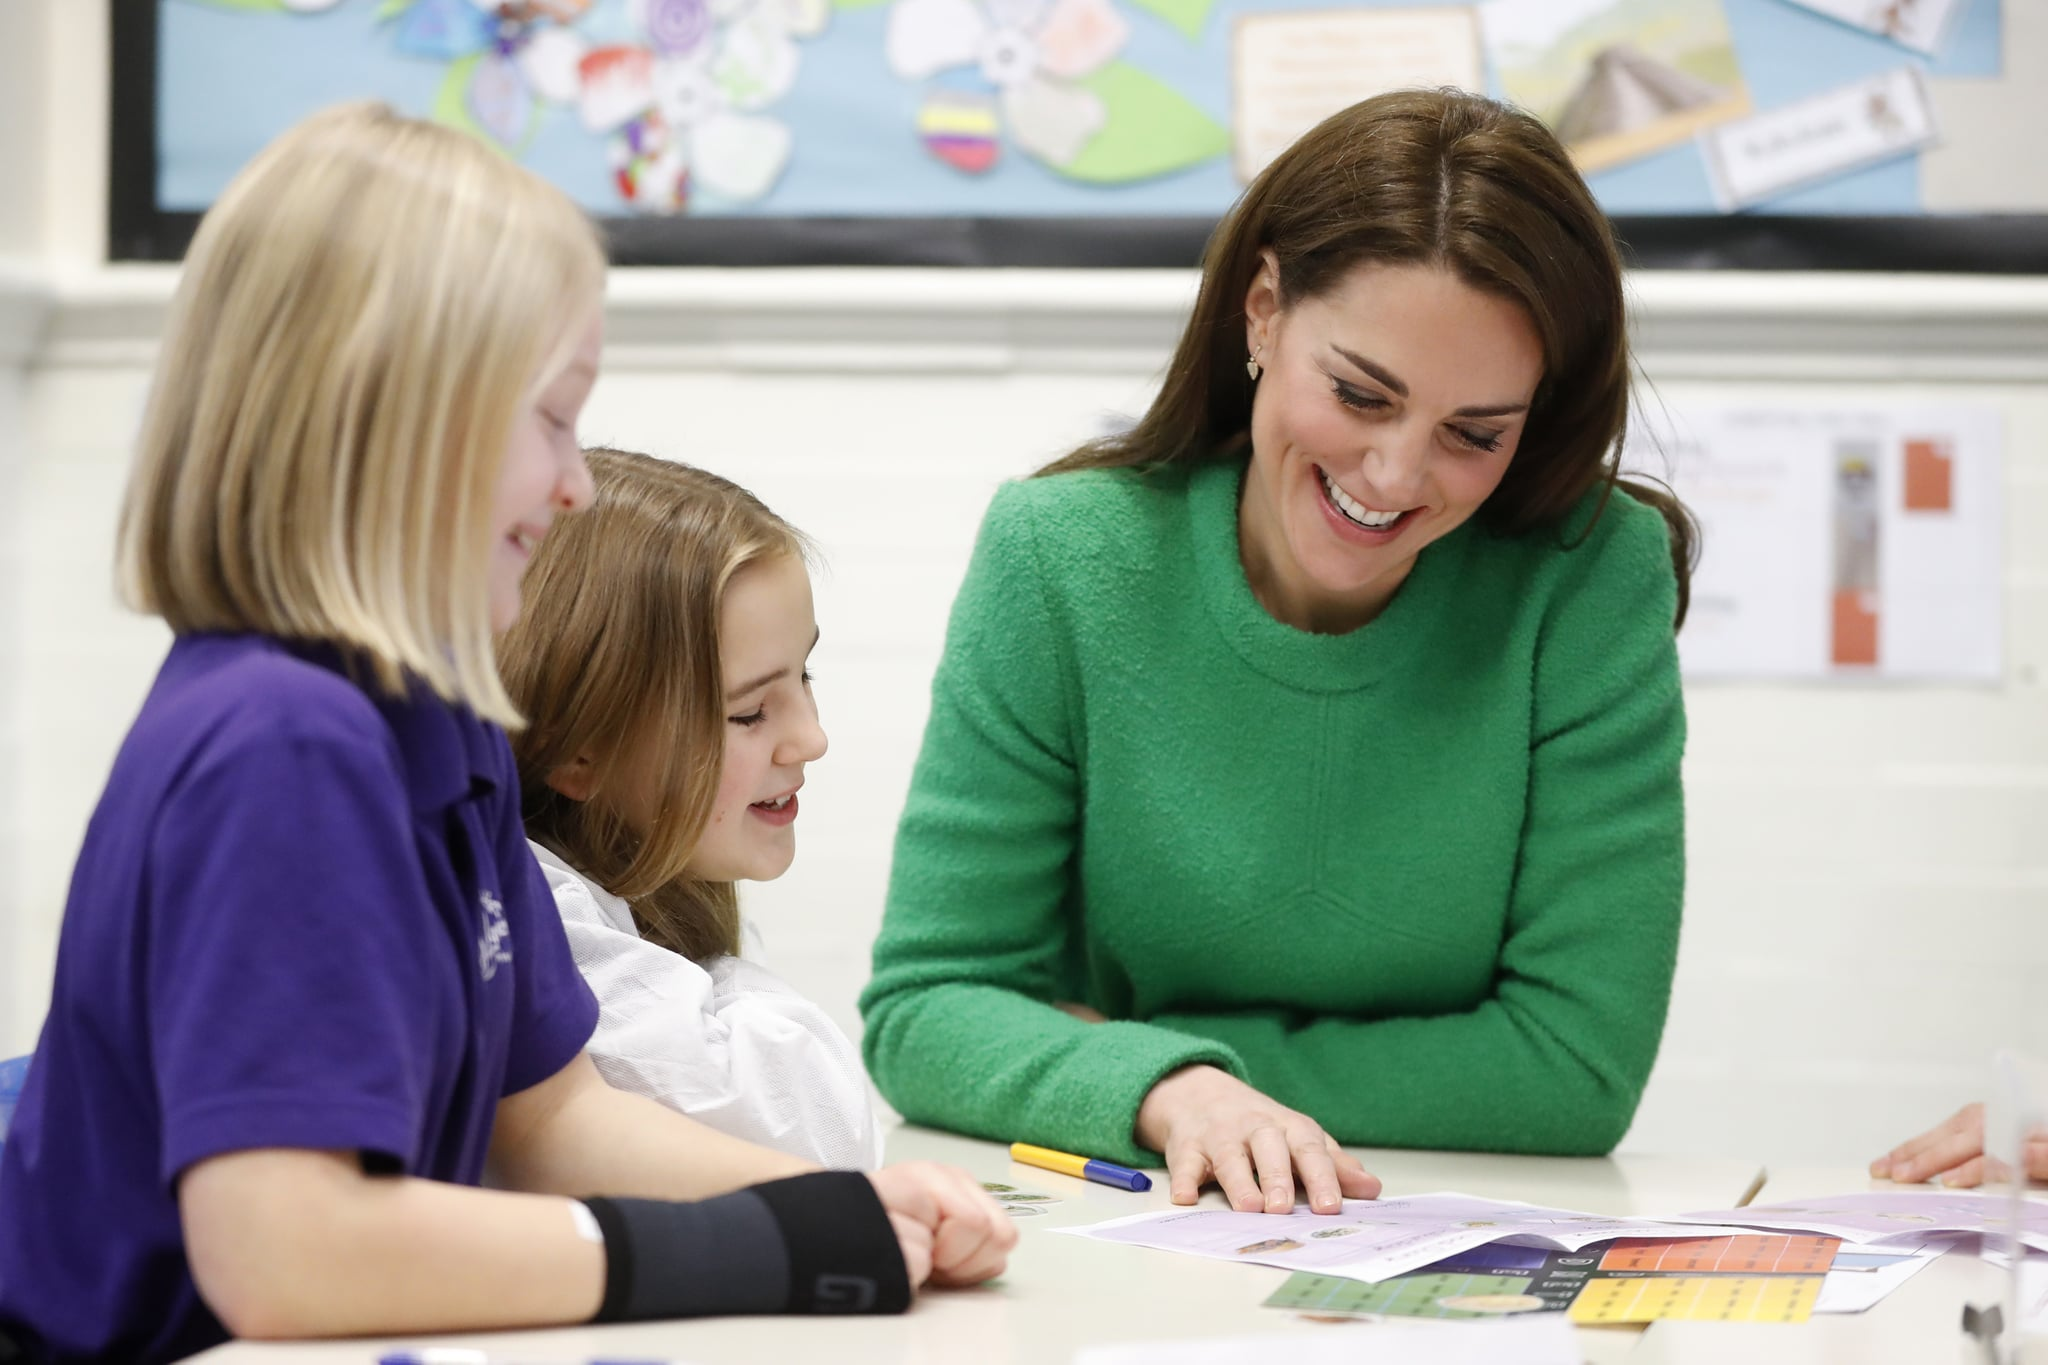 Britain's Catherine, Duchess of Cambridge (R), visits Lavender Primary School in London on February 5, 2019, in support of the children's mental health charity 'Place2Be's Mental Health Week. (Photo by Chris Jackson / POOL / AFP)        (Photo credit should read CHRIS JACKSON/AFP/Getty Images)